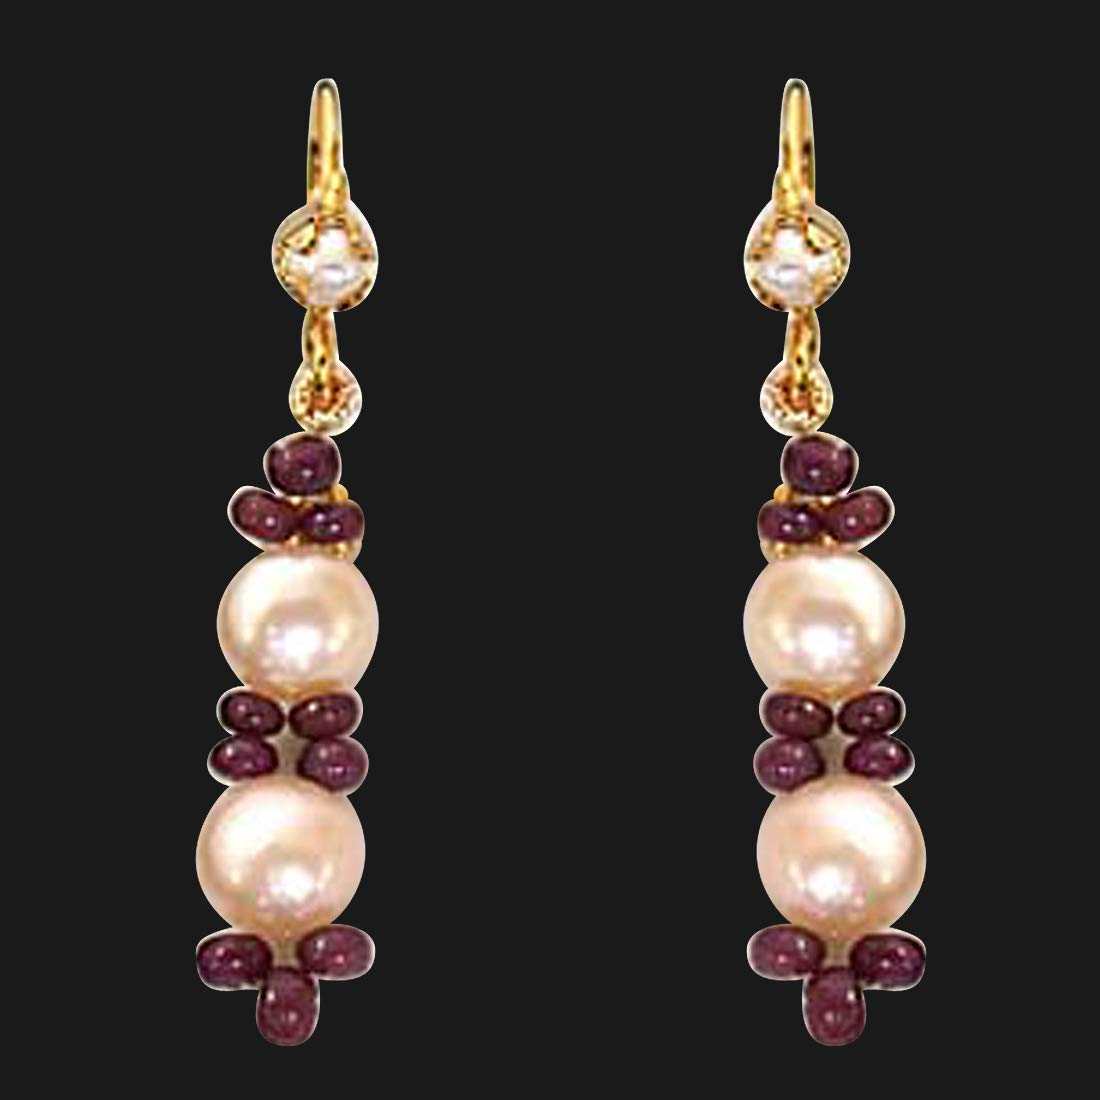 Real Ruby Beads & Peach Button Pearl Hanging Earrings for Women (SE129)